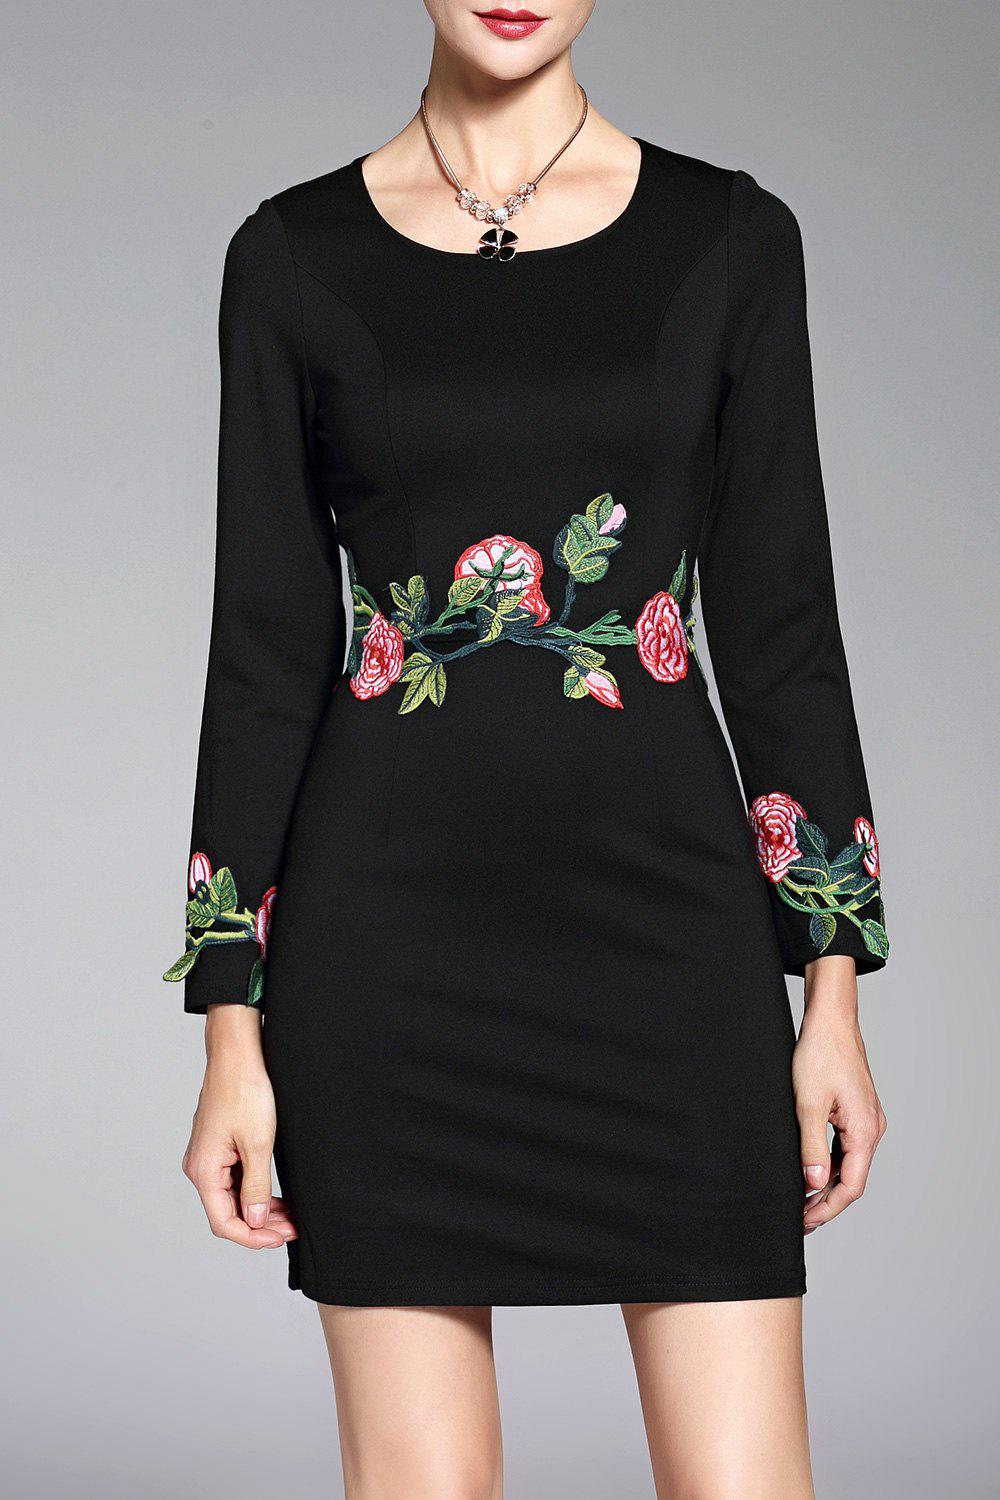 Hot Long Sleeve Embroidered Short Dress